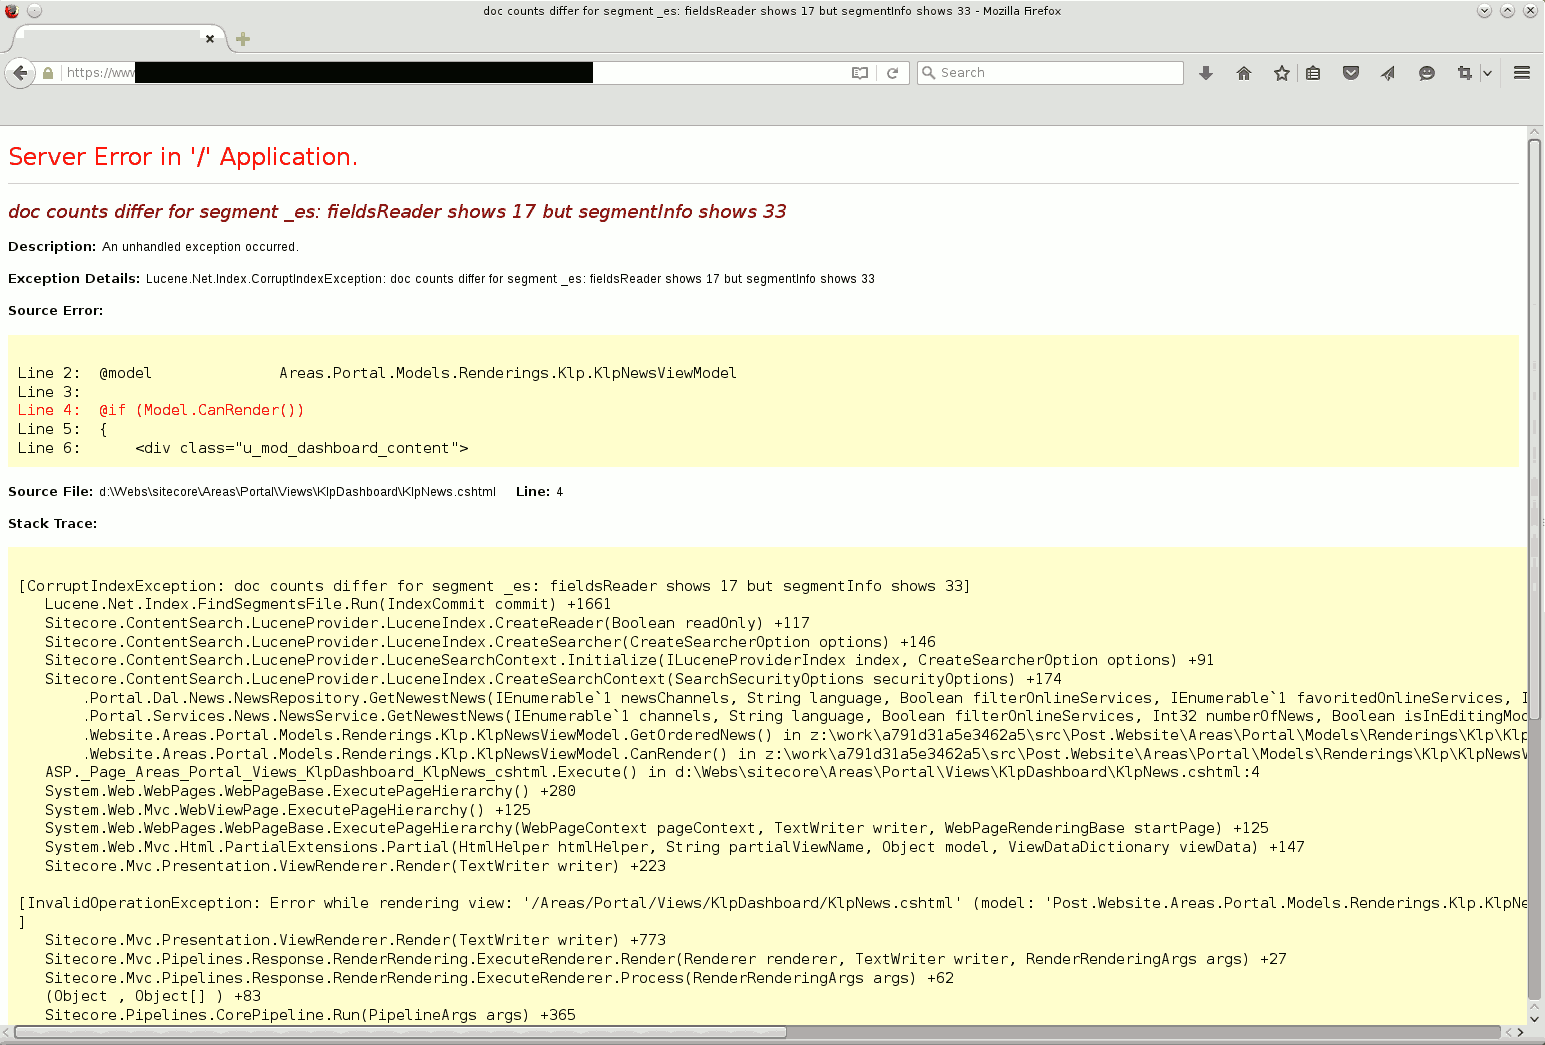 Stacktrace of exception shown to the user in the browser